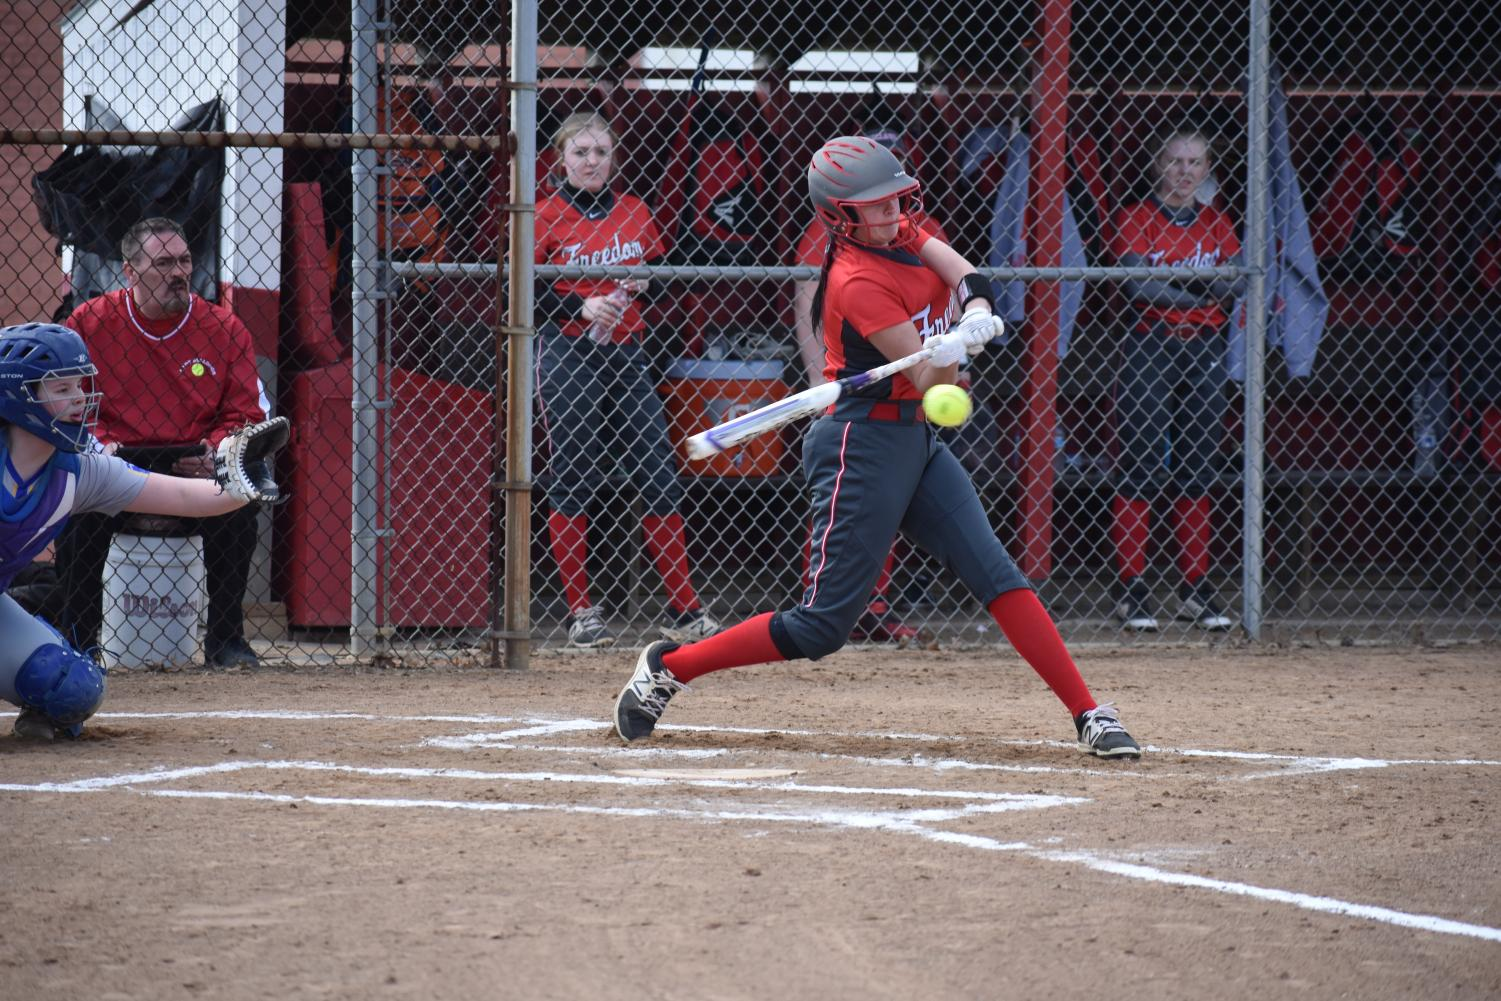 Sophomore Olivia Shaffer singles during the Bulldogs' home game on March 19 against Avella.